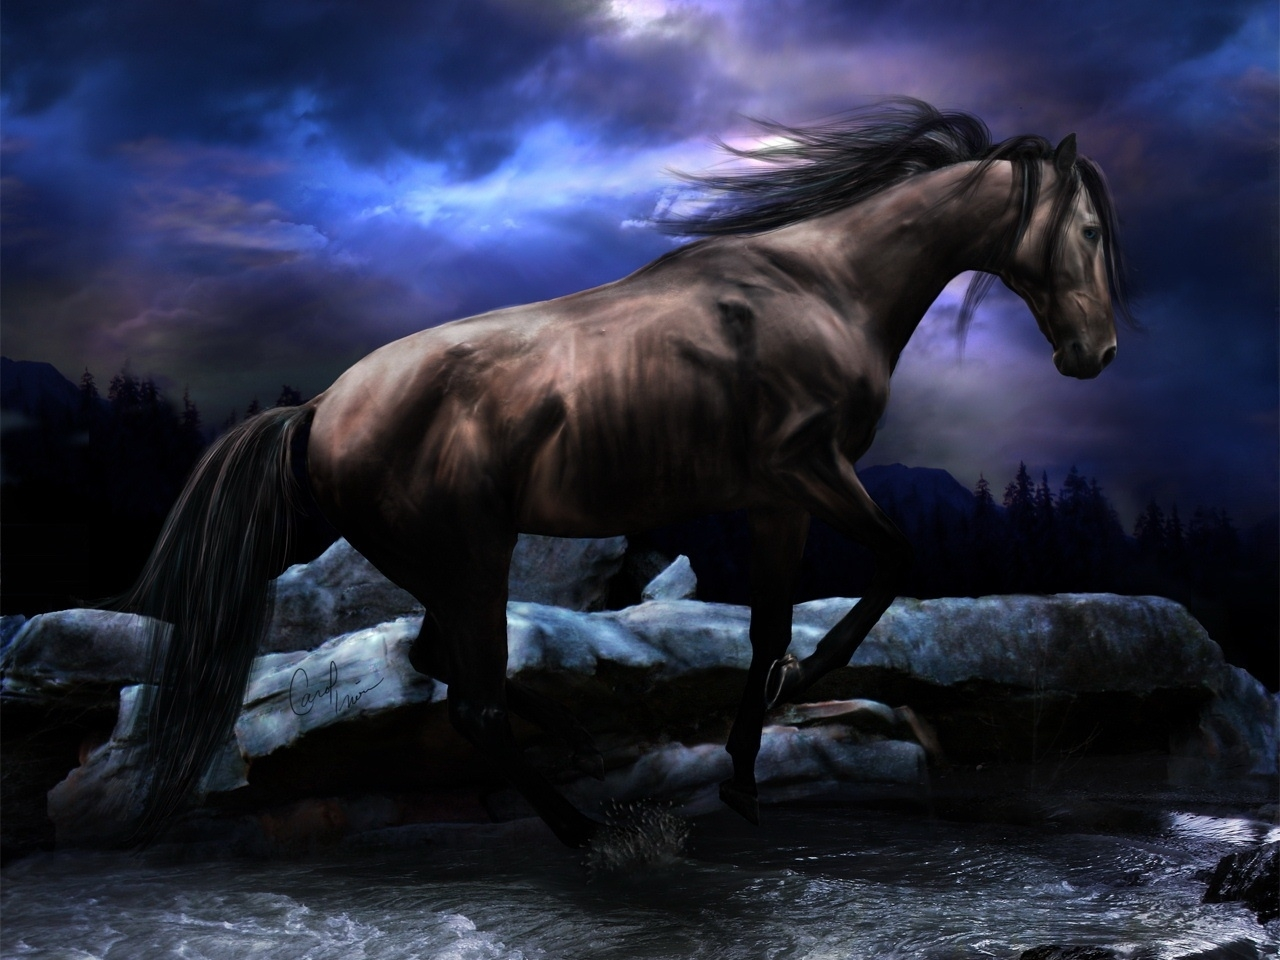 42480 download wallpaper Animals, Horses screensavers and pictures for free